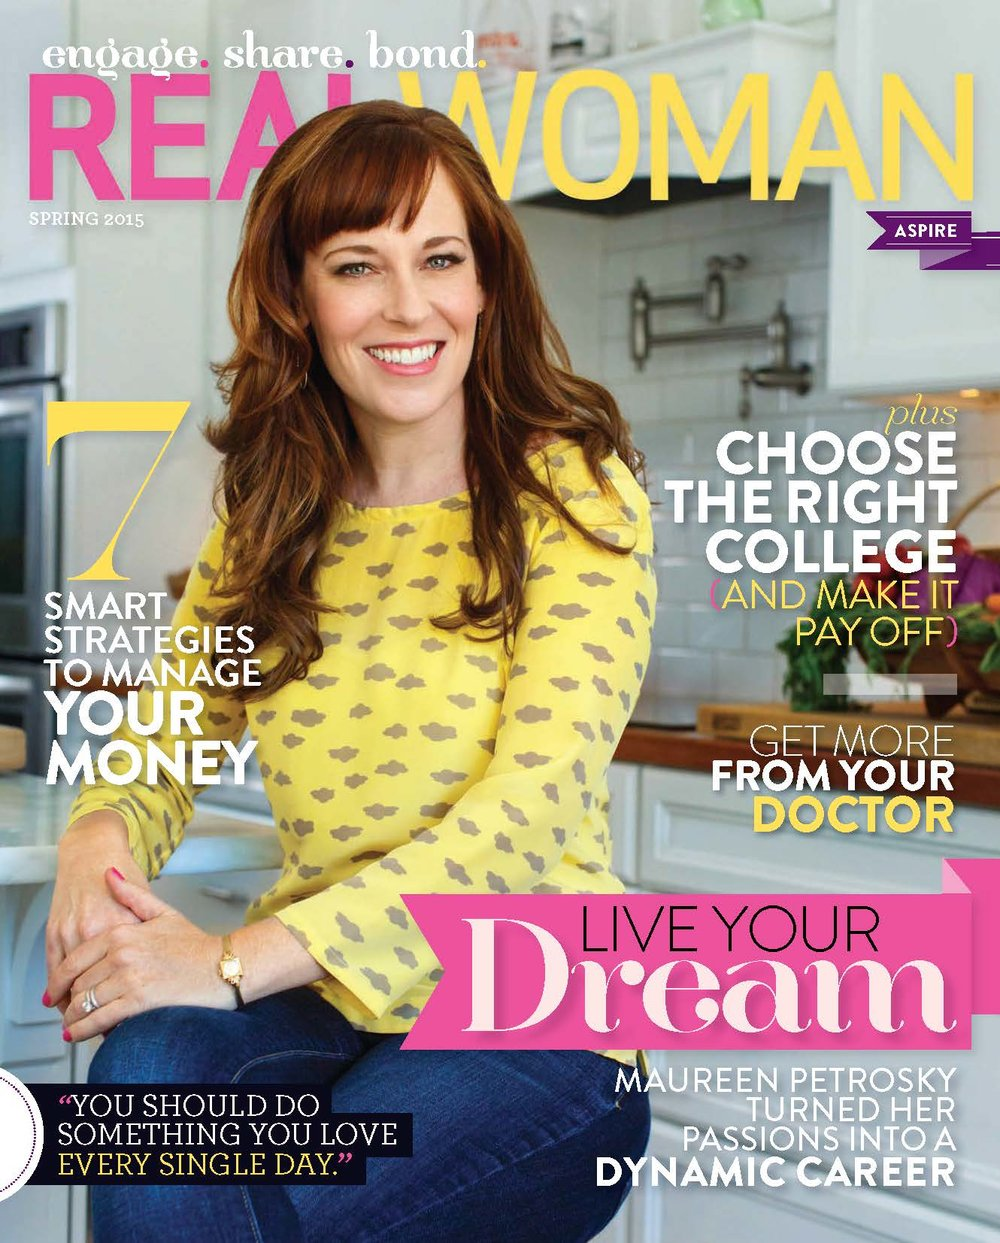 RealWoman_Spring2015_Cover.jpg